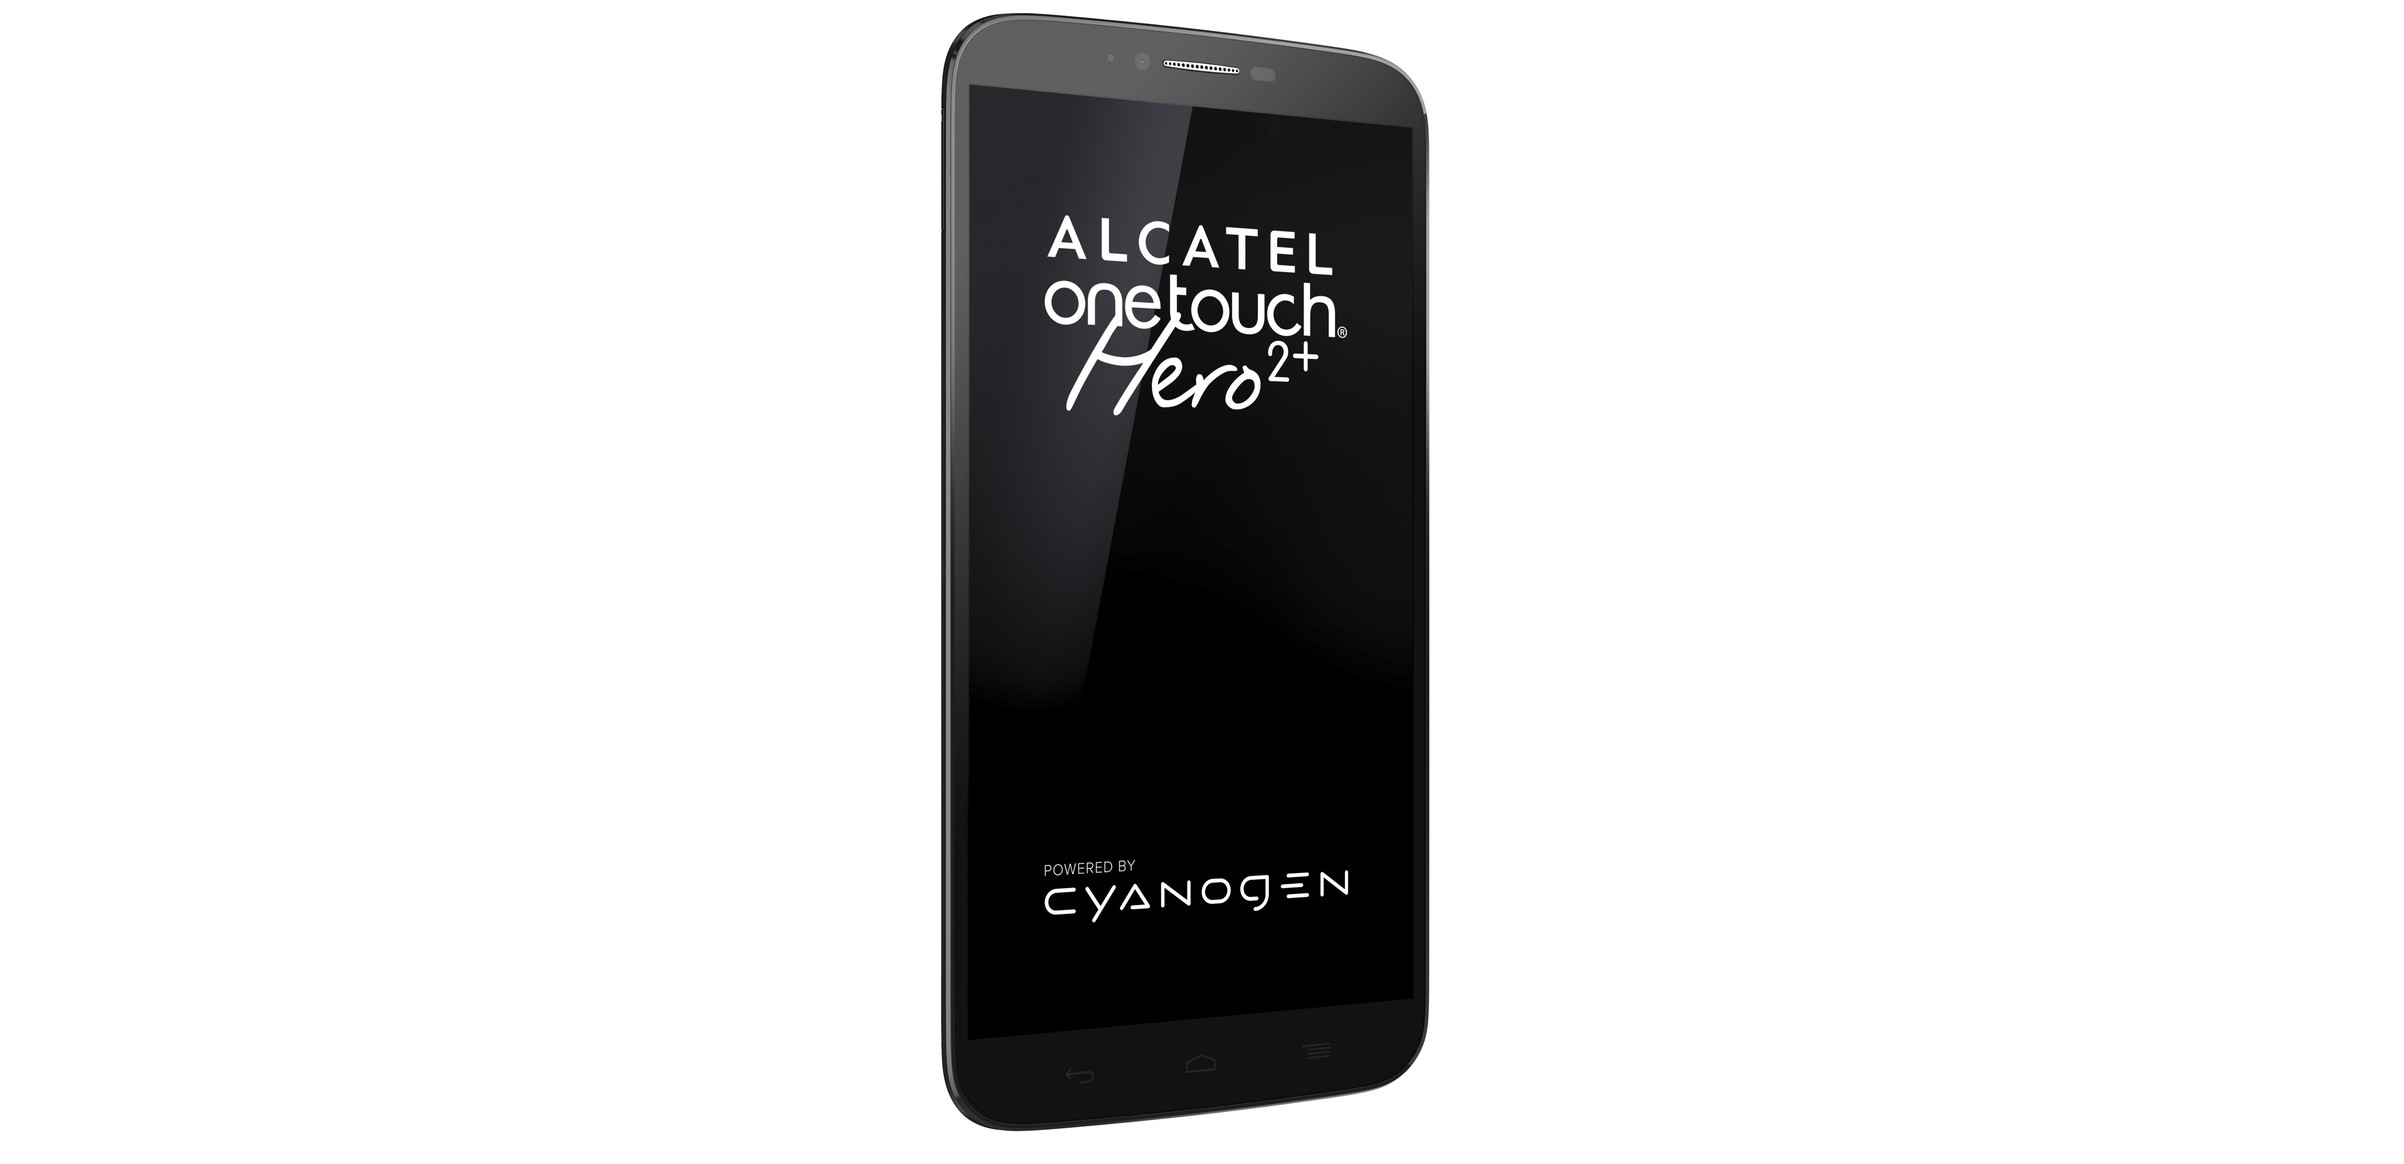 Alcatel OneTouch Hero 2+